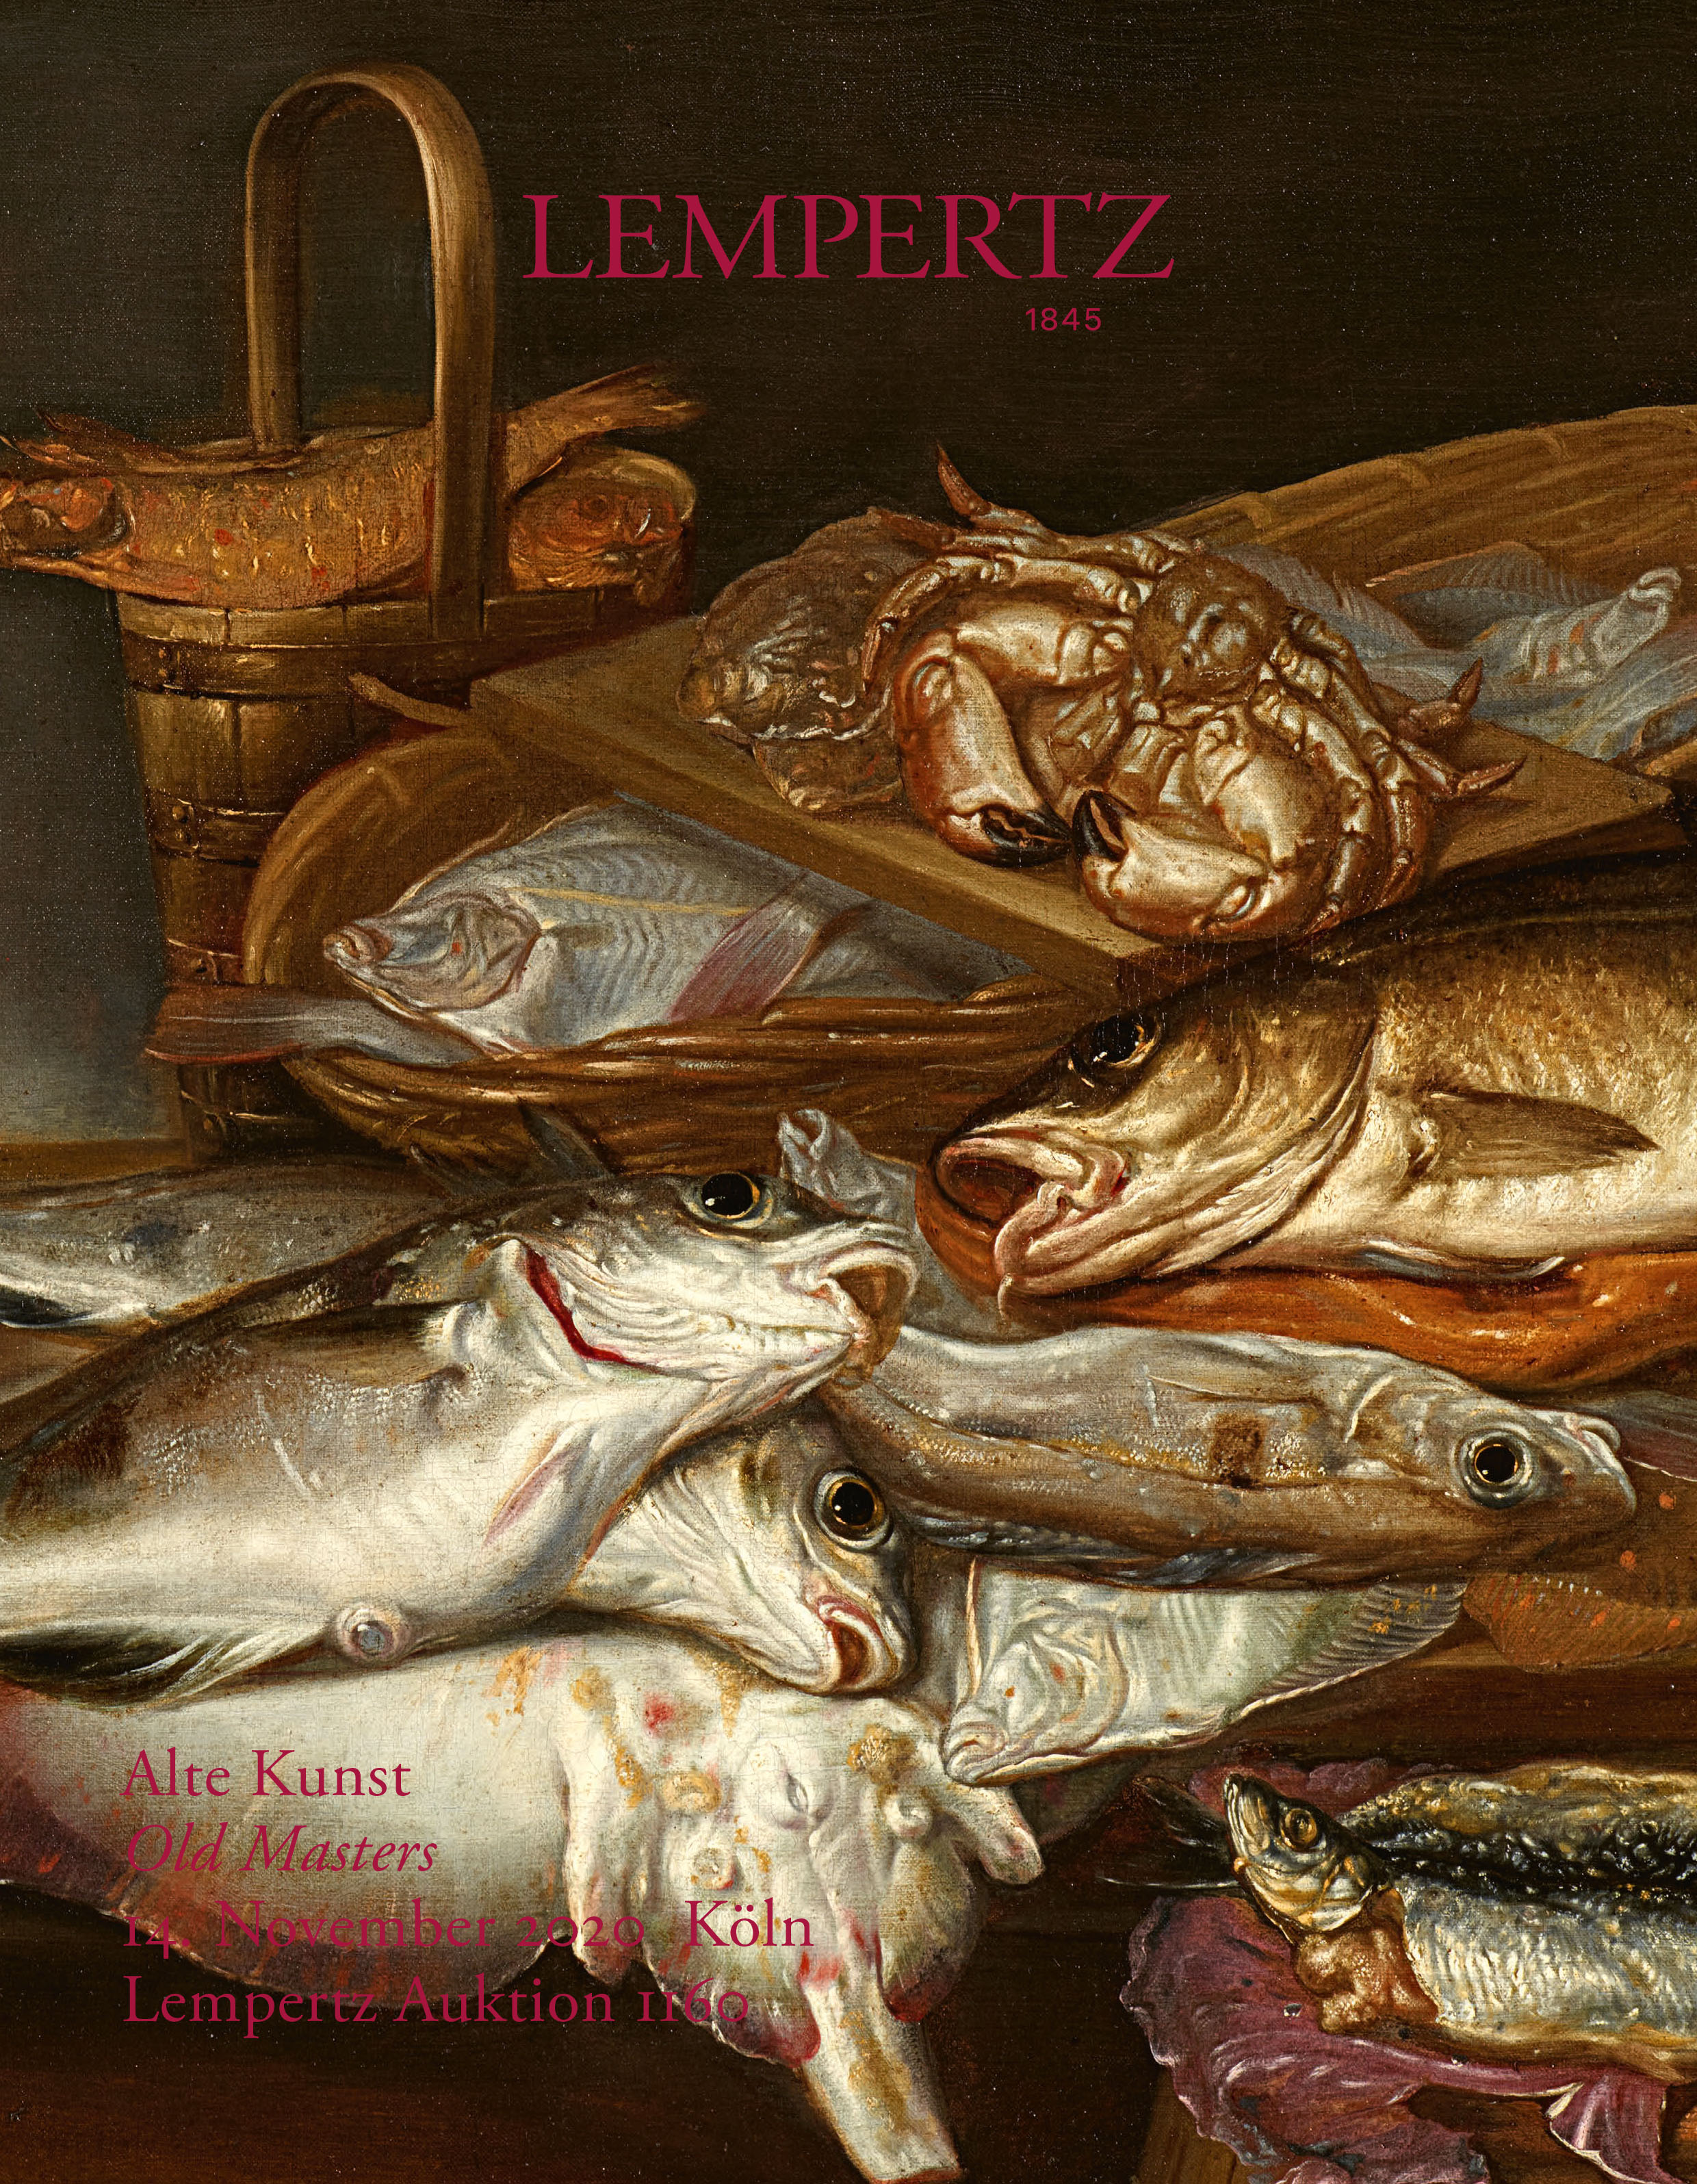 Catalogue - Old Masters - Online Catalogue - Auction 1160 – Purchase valuable works of art at the next Lempertz-Auction!